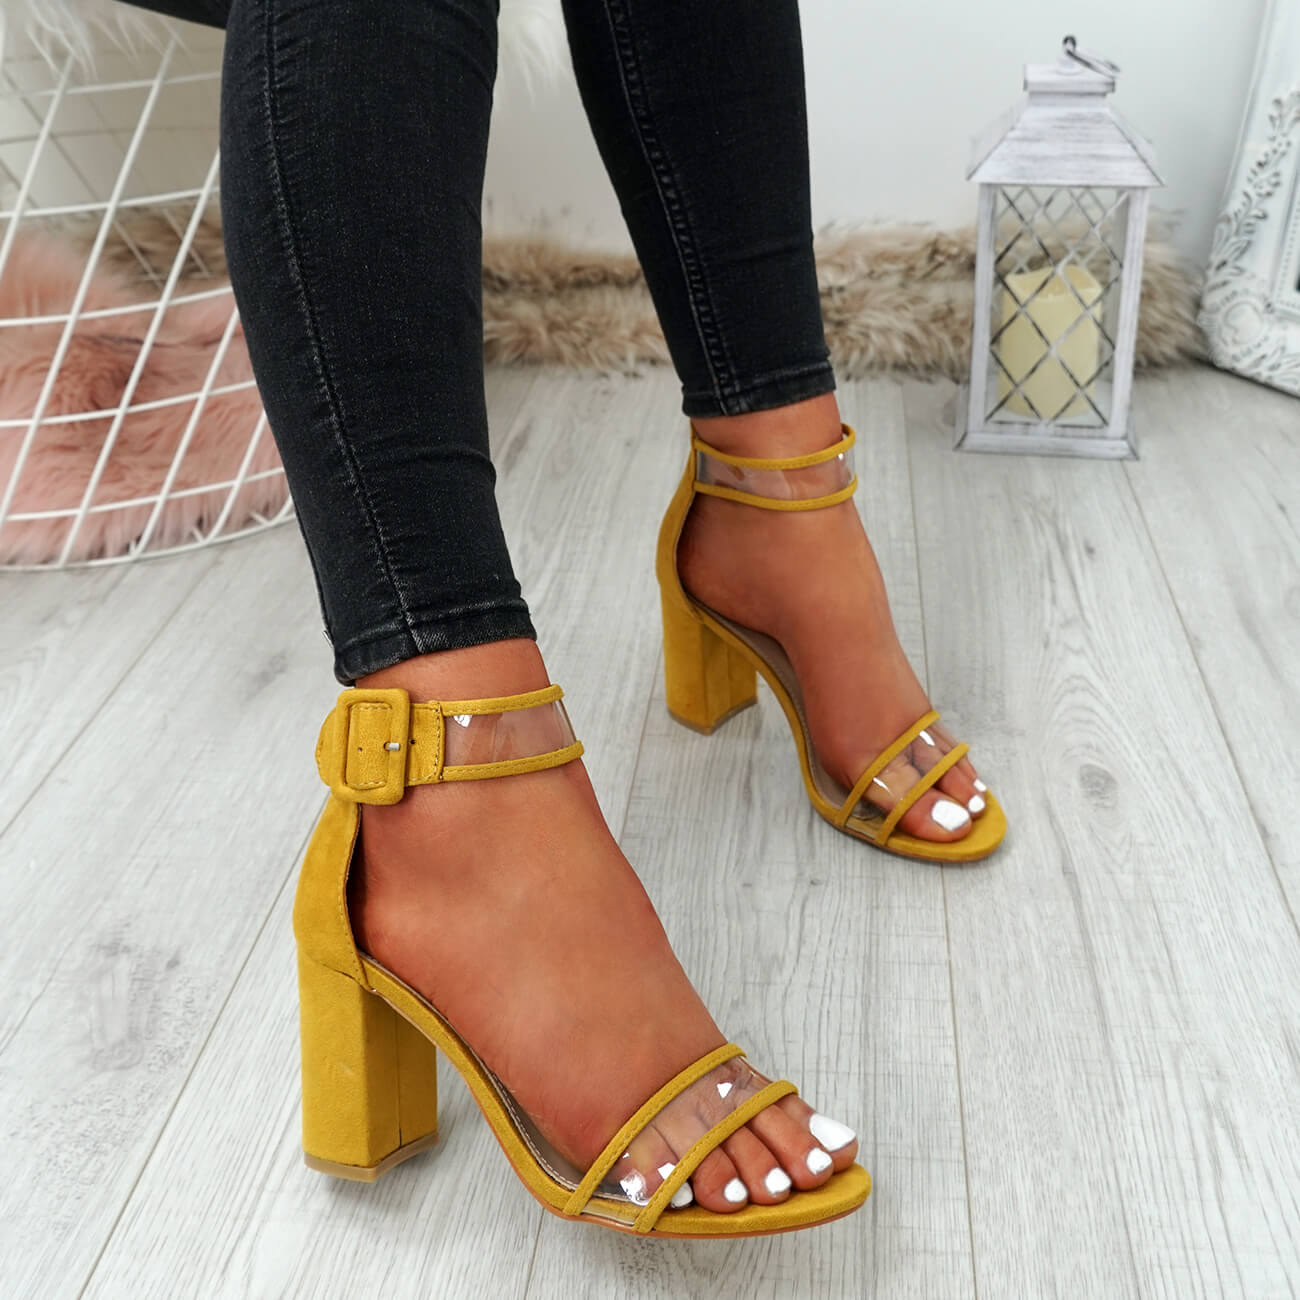 WOMENS-LADIES-ANKLE-STRAP-PEEP-TOE-HIGH-BLOCK-HEEL-SANDALS-FASHION-SHOES thumbnail 40